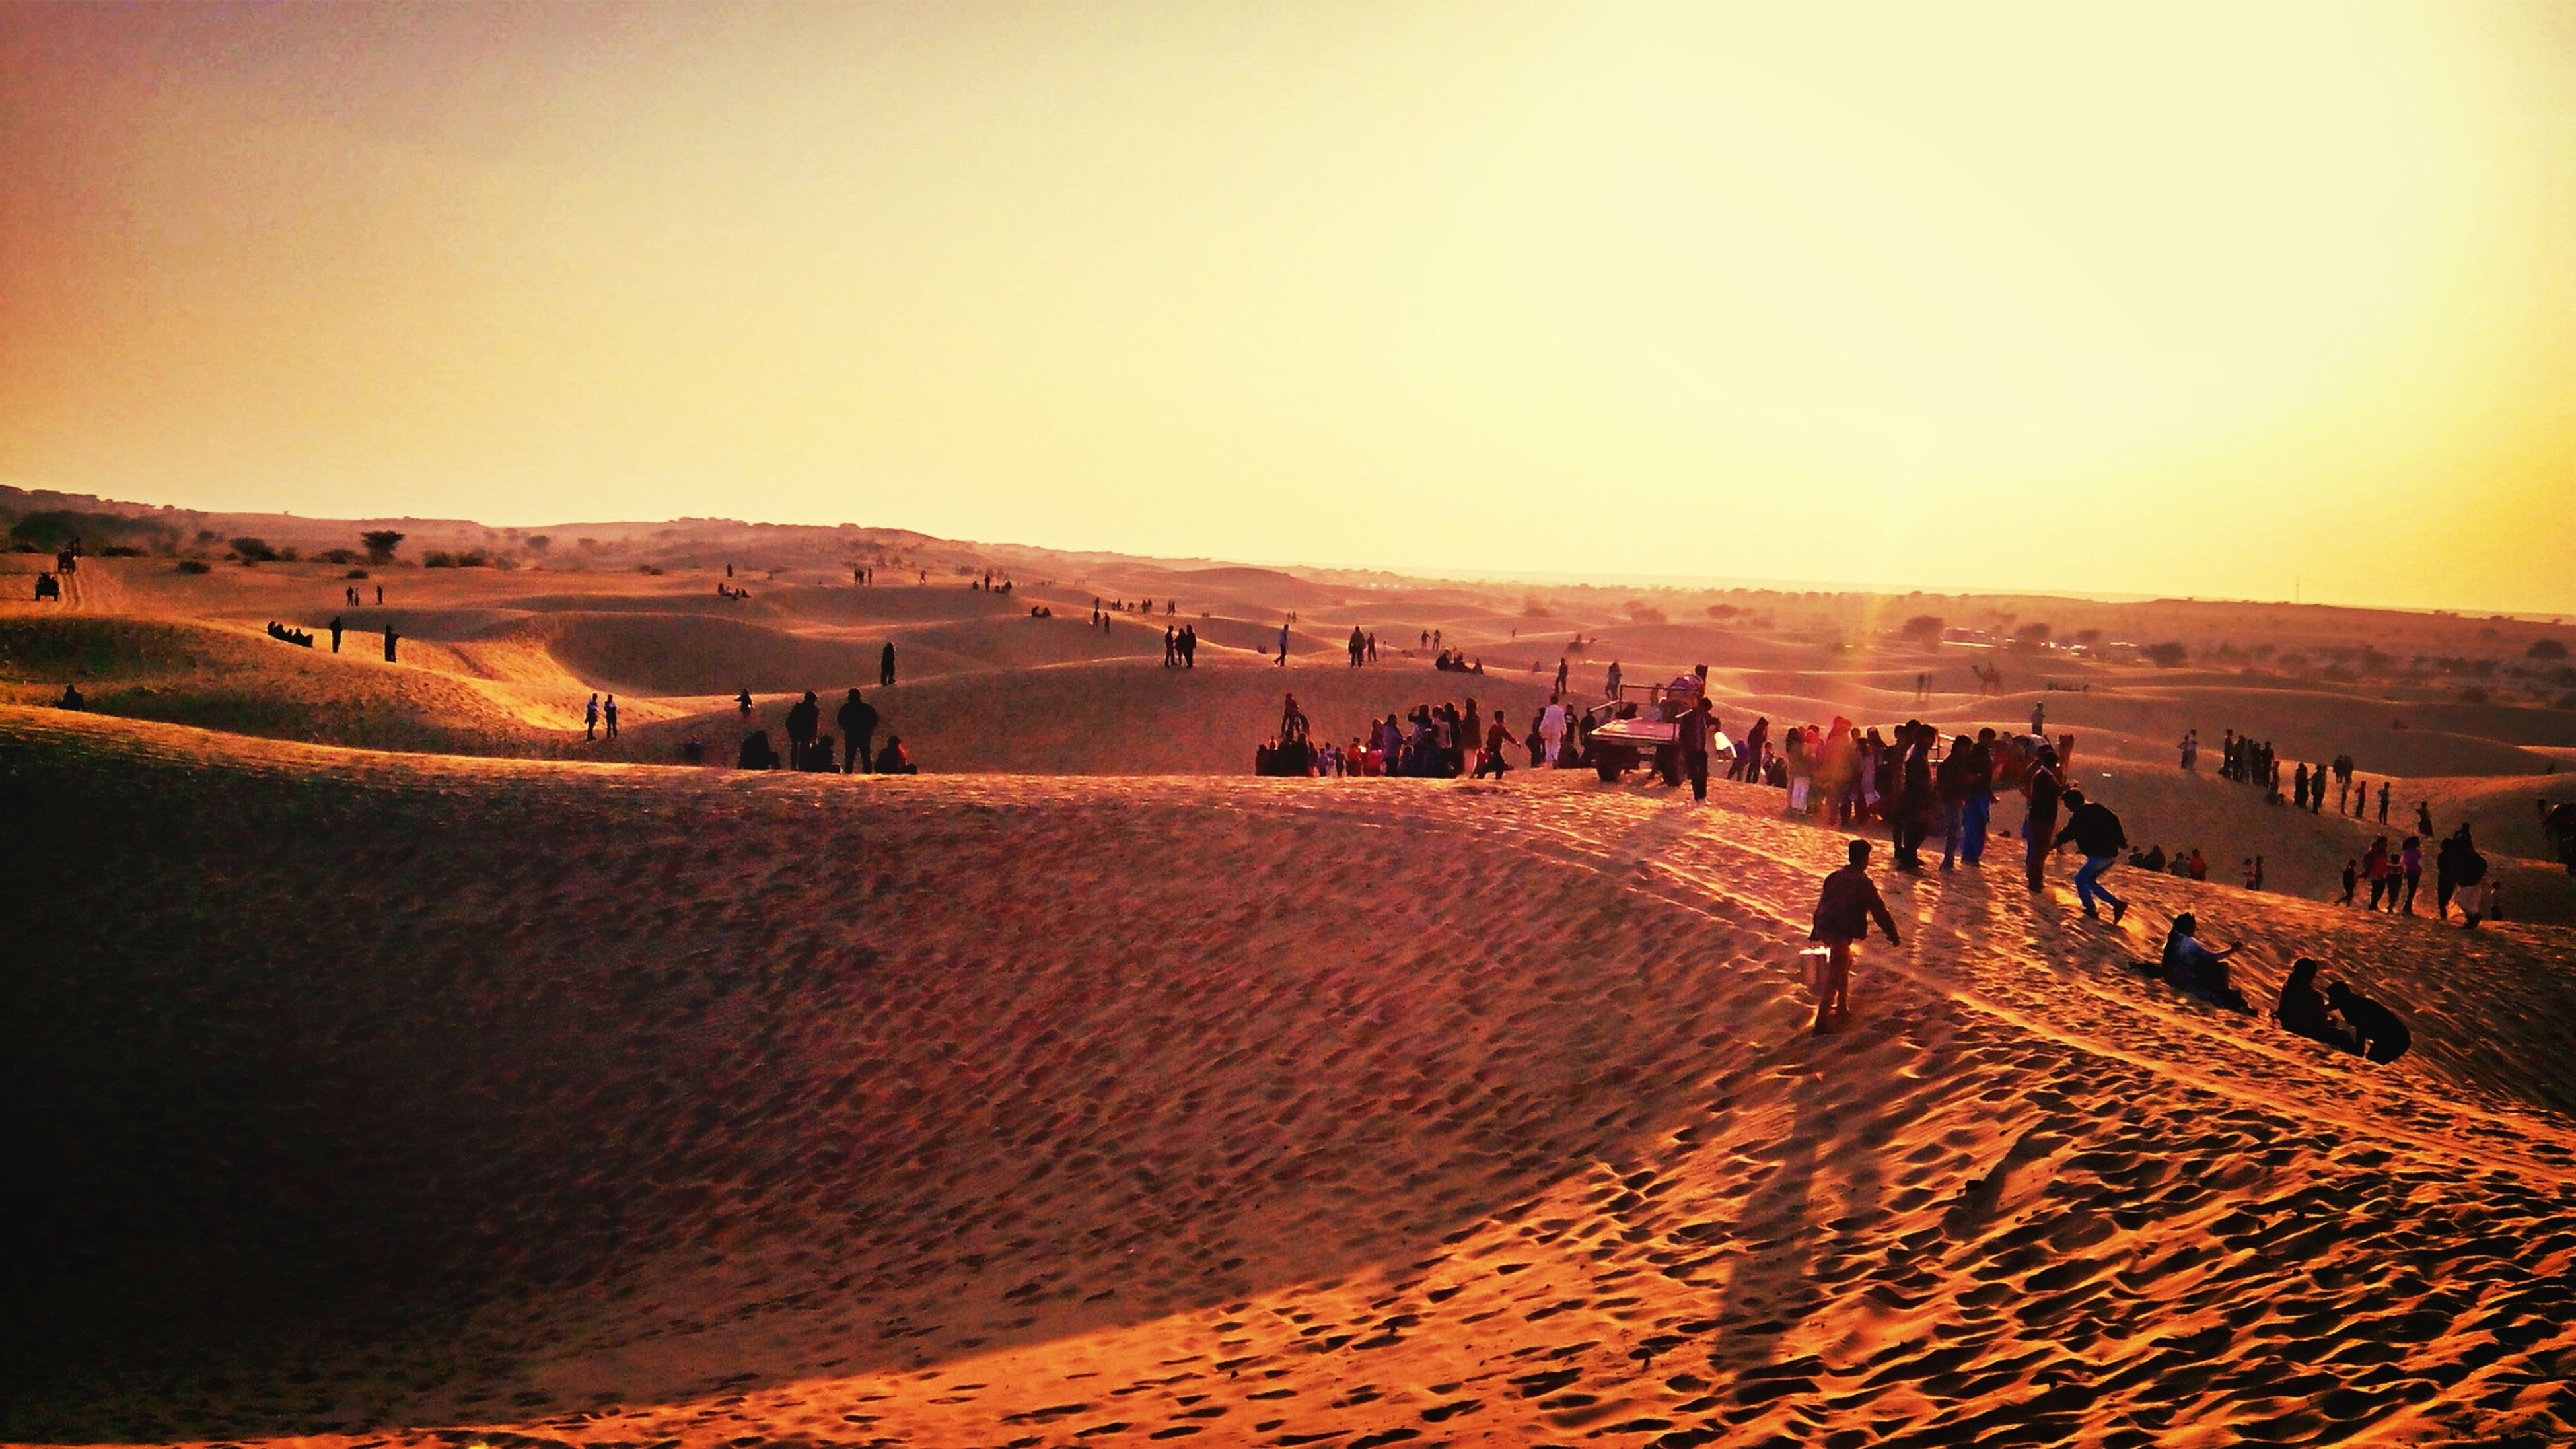 landscape, desert, clear sky, sand, sand dune, tranquil scene, copy space, field, tranquility, large group of people, horizon over land, scenics, arid climate, nature, sunset, rural scene, agriculture, beauty in nature, sky